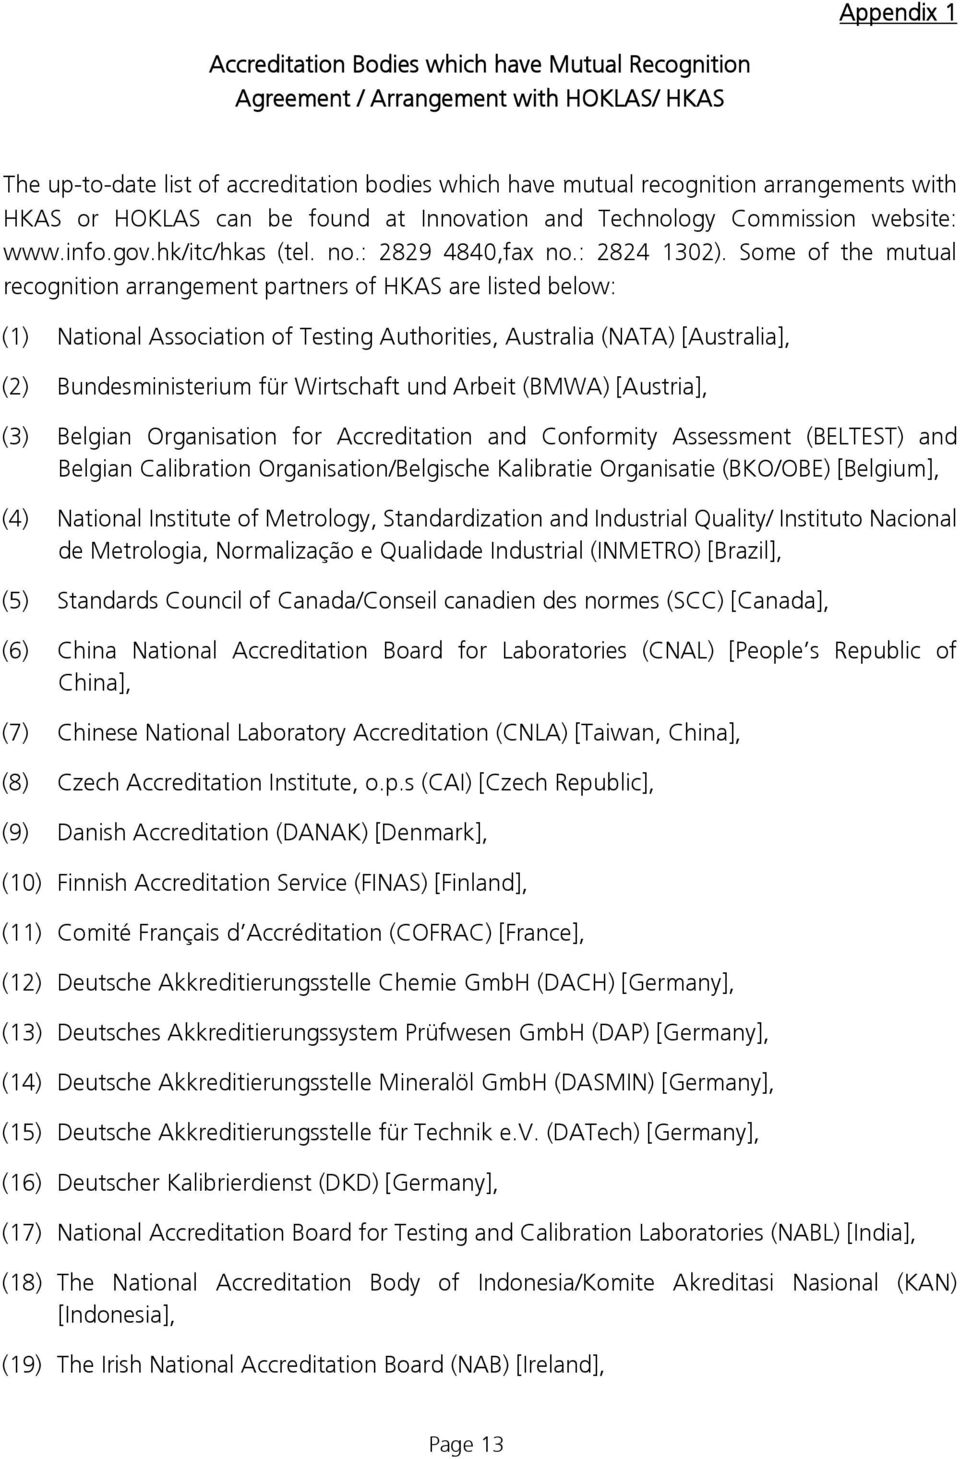 Some of the mutual recognition arrangement partners of HKAS are listed below: (1) National Association of Testing Authorities, Australia (NATA) [Australia], (2) Bundesministerium für Wirtschaft und